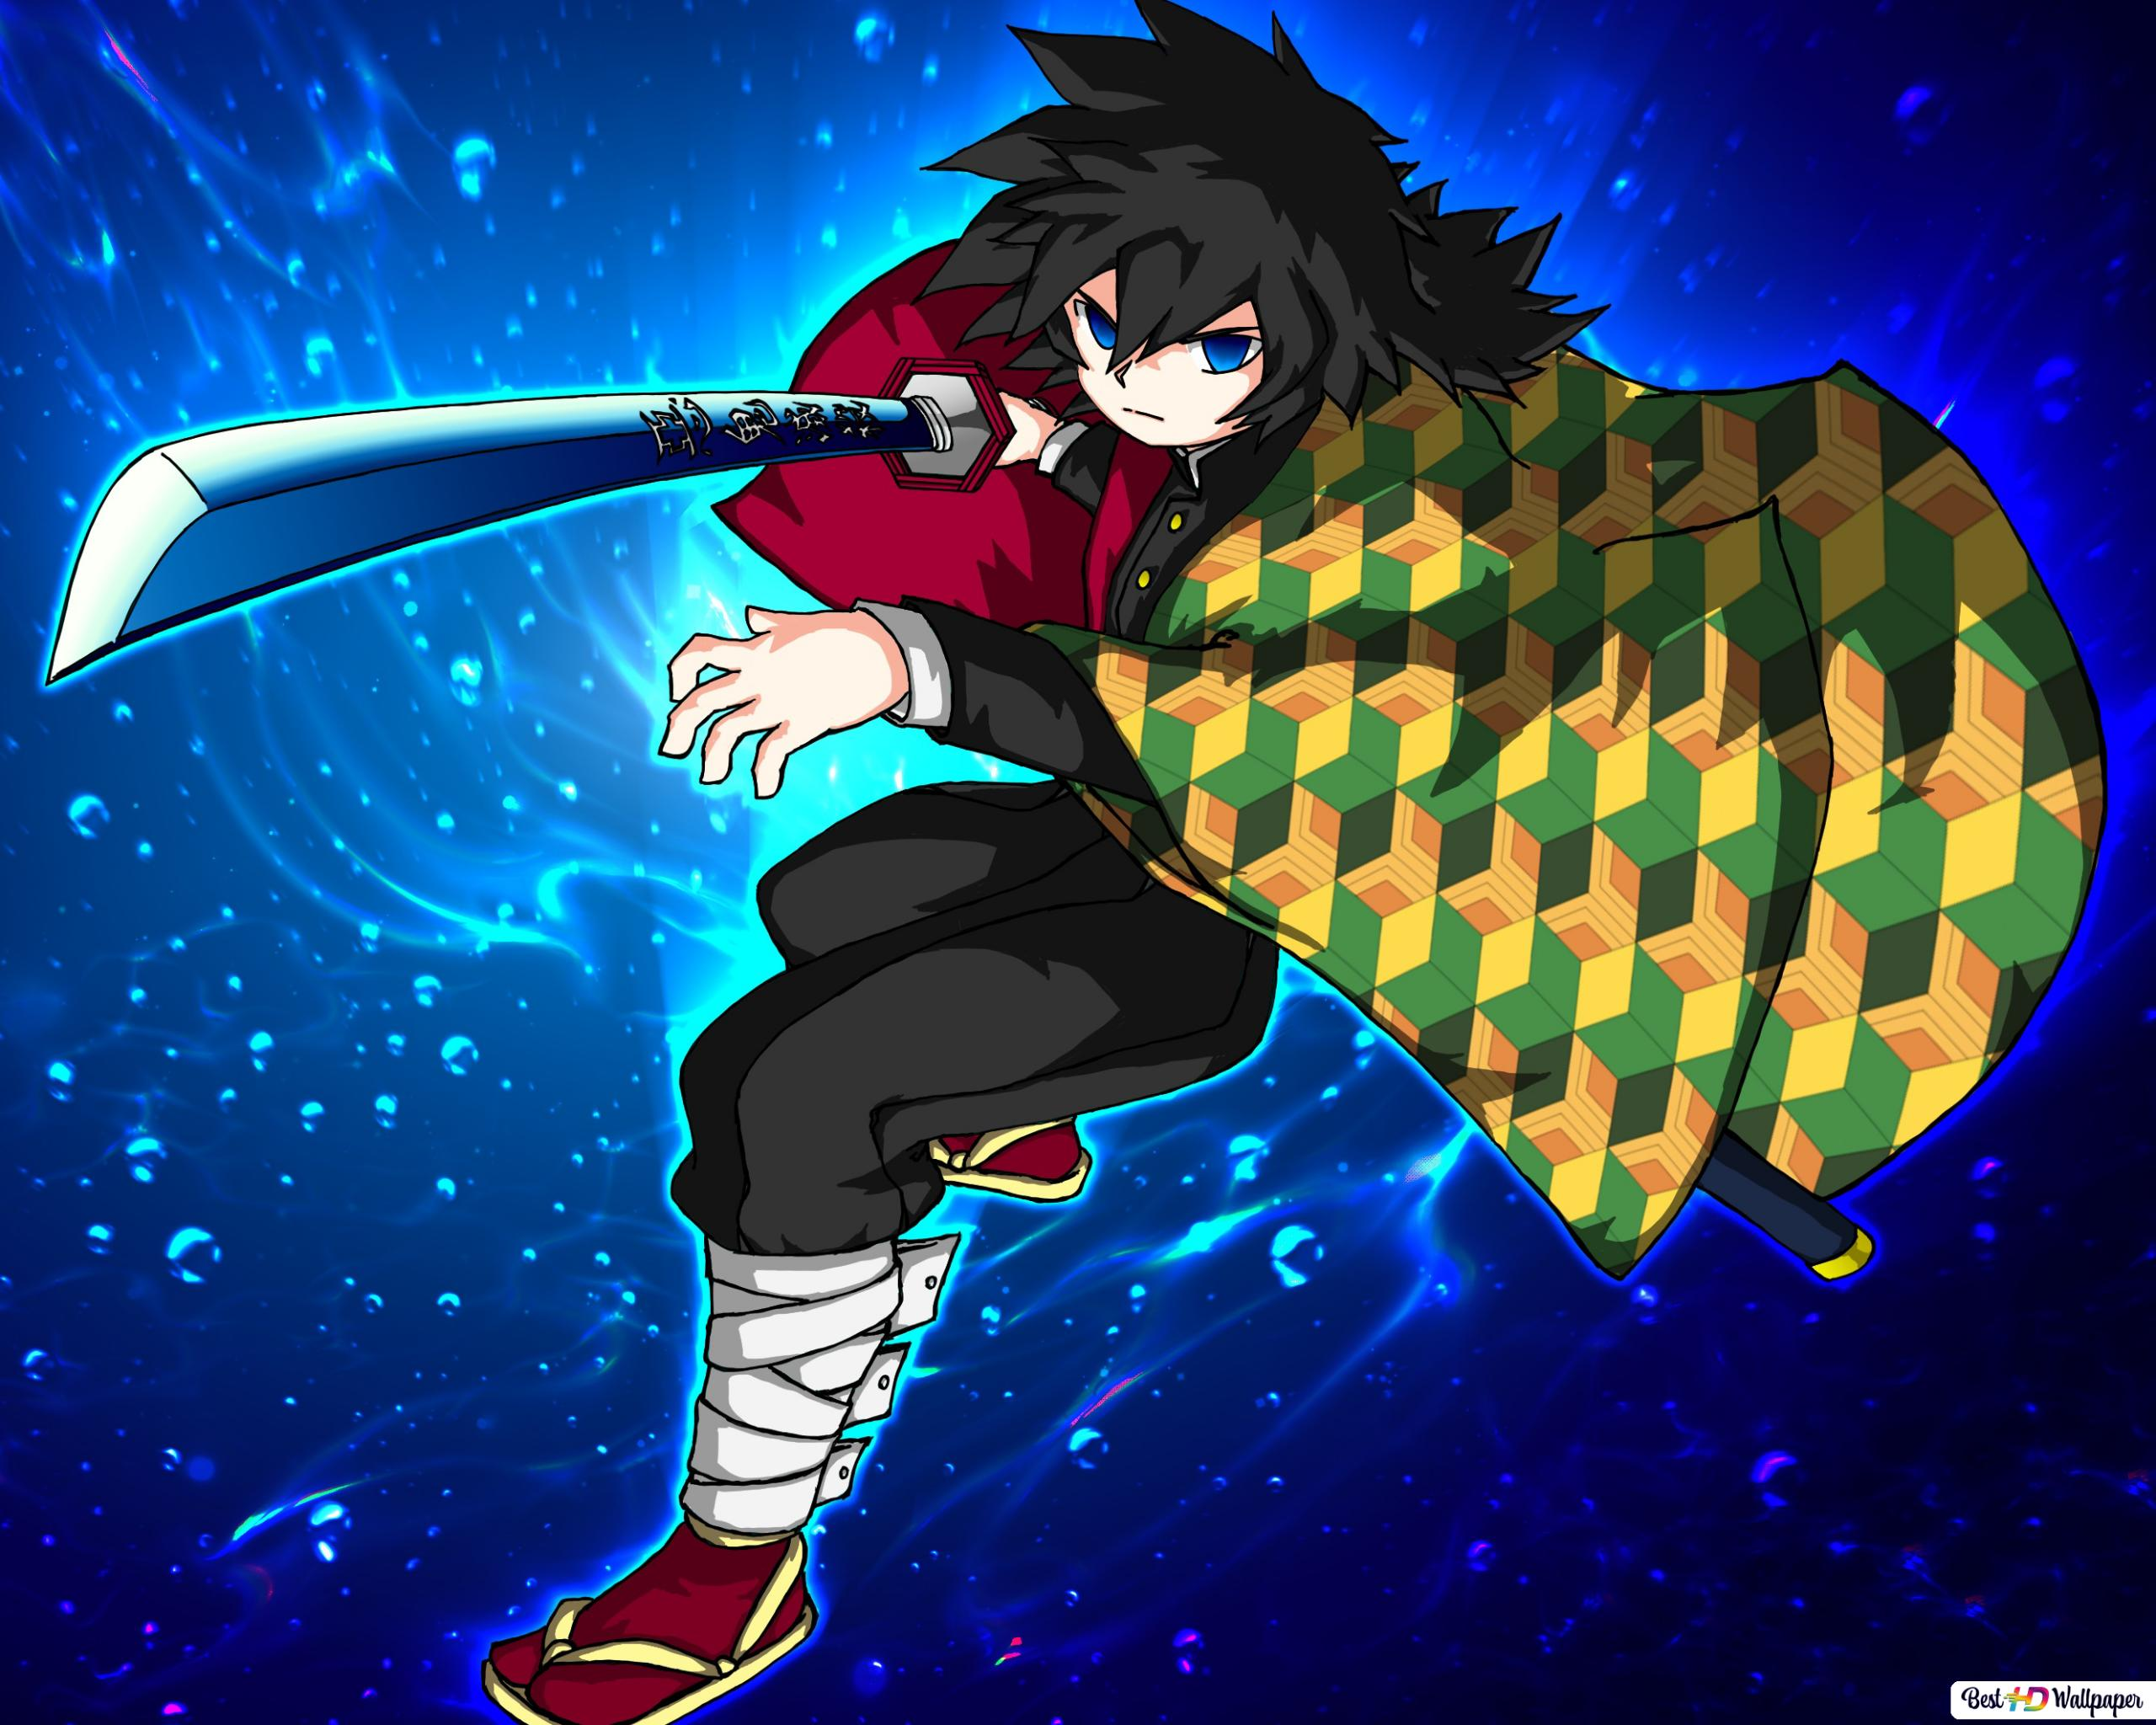 Giyuu Tomioka Demon Slayer Kimetsu No Yaiba Hd Wallpaper Download